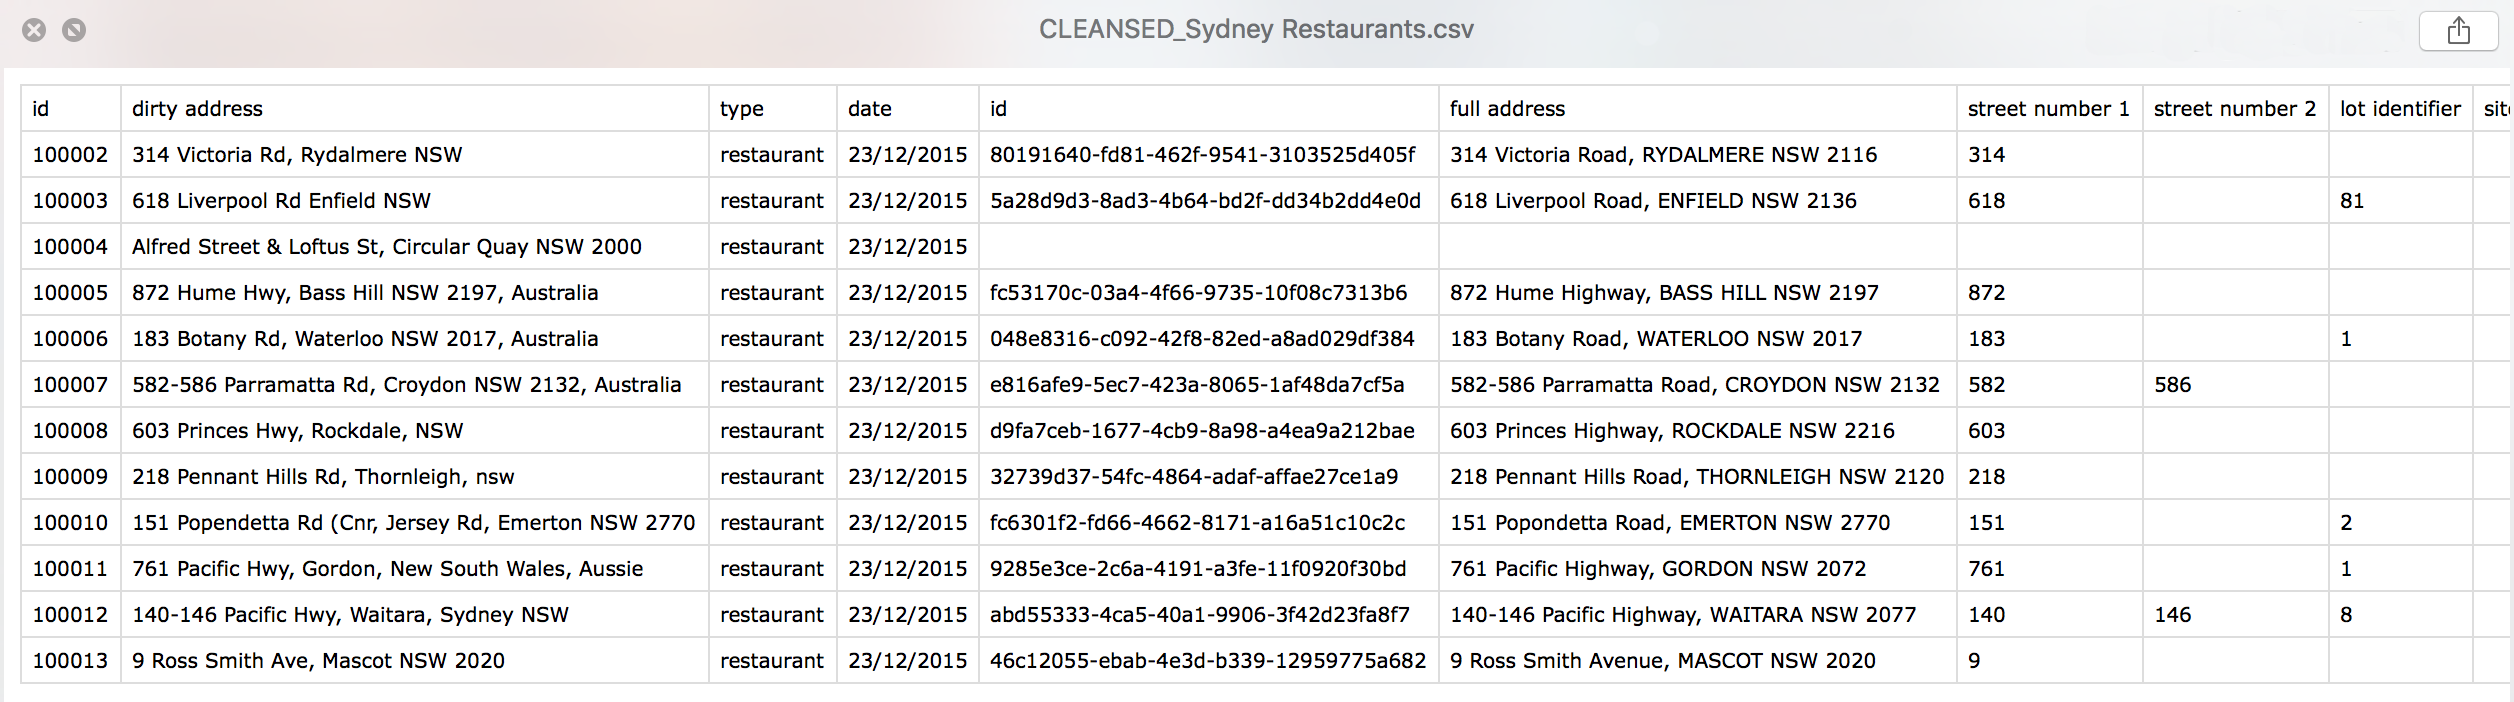 A screenshot of the verified CSV, showing the address detail columns AddressFinder appends to each row.